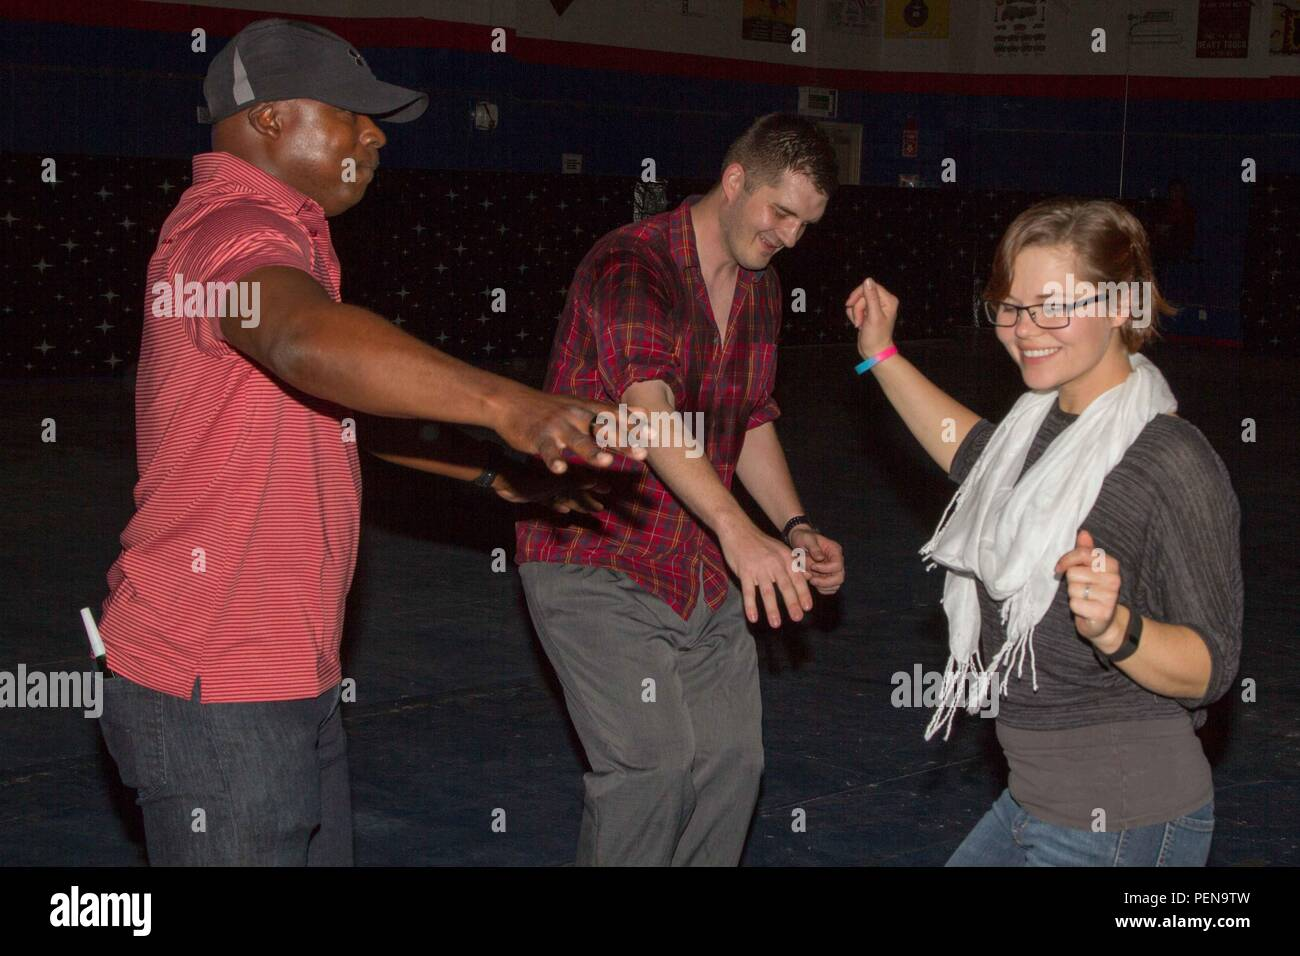 (from left to right) Capt. Marland Gibbert, Spc. Glenn Hahn and Sgt. Jessica Brown dance at the New Year's Eve party on Camp Arifjan, Kuwait, Dec. 31. During the event, service members danced to 1990s music, socialized and had refreshments before counting down to 2016 with a New Year's ball drop. (U.S. Army photo by Sgt. David N. Beckstrom, 19th Public Affairs Detachment, U.S. Army Central) - Stock Image